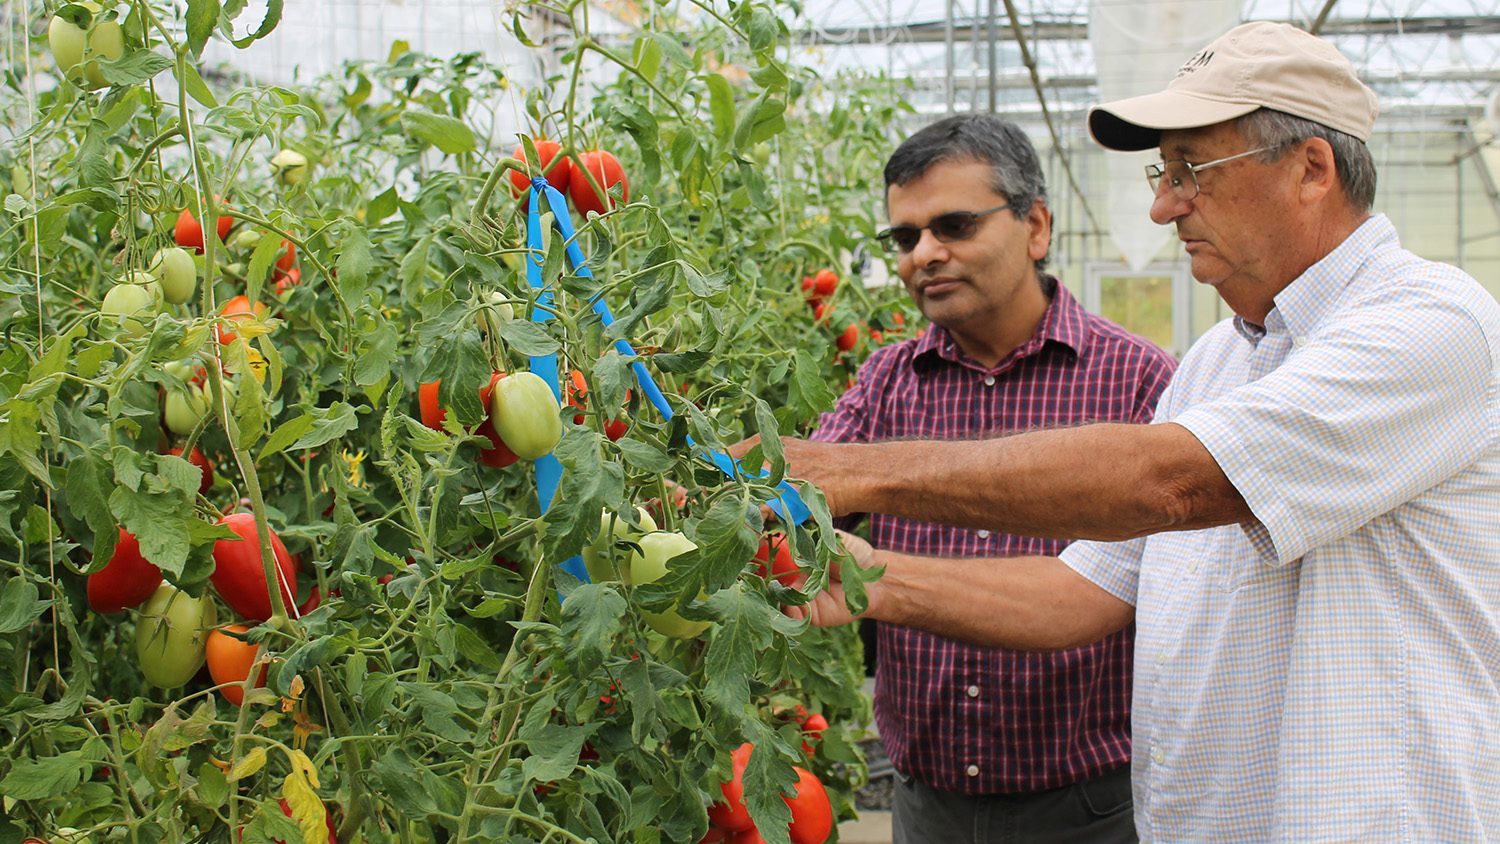 Two scientists look at tomatoes growing in a greenhouse.